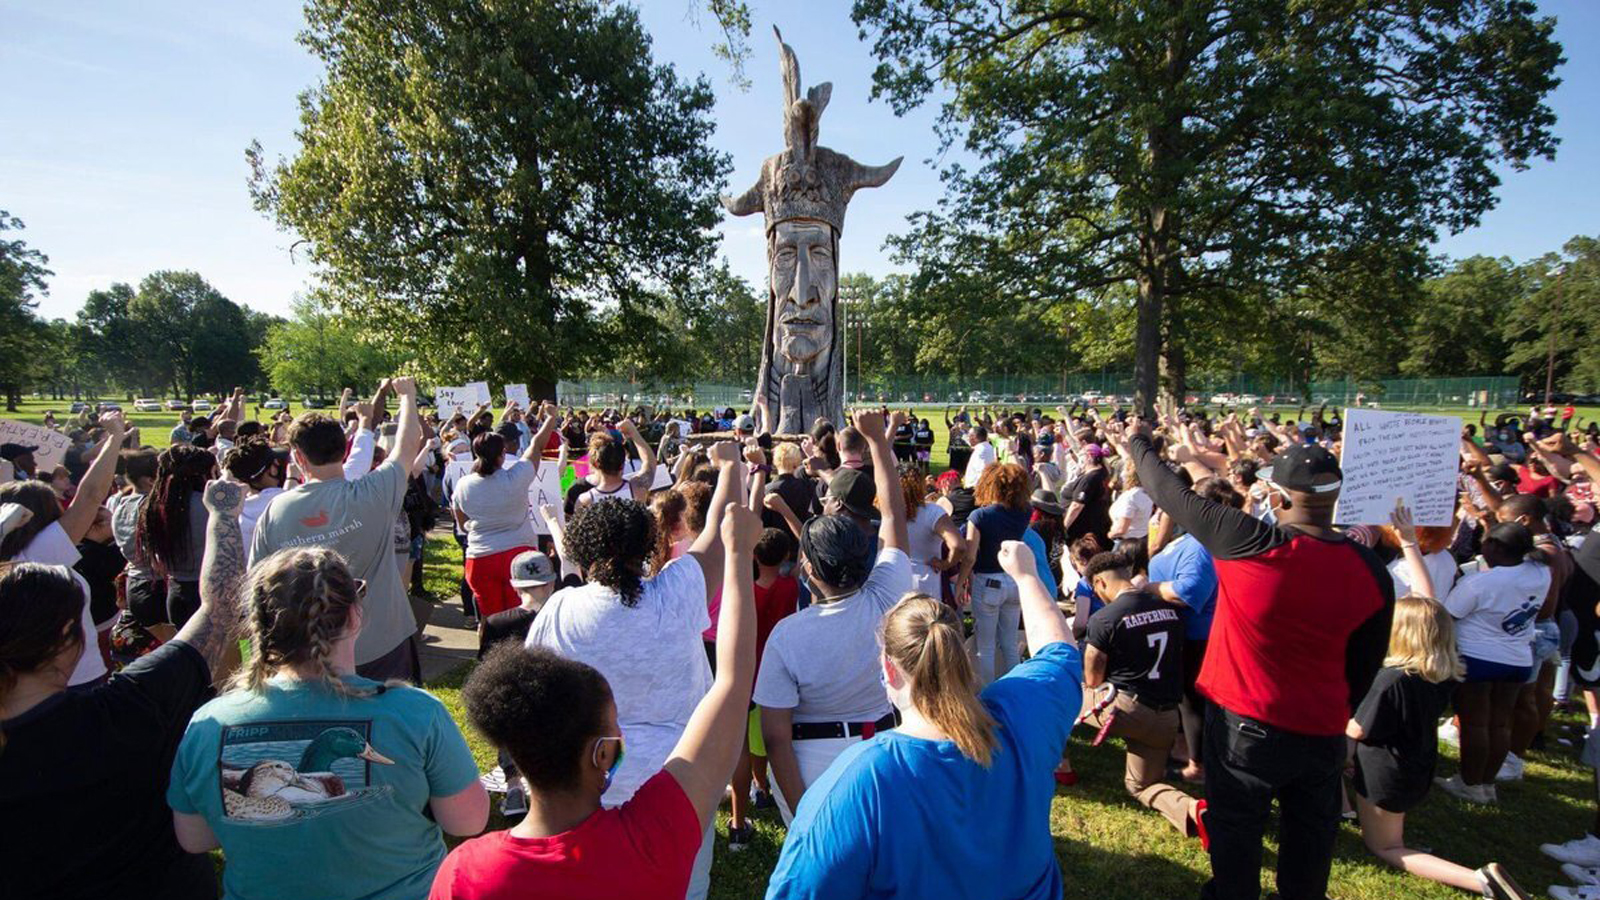 A peaceful protest in Paducah, Kentucky on Monday in front of the city's Chief Paduke statue.